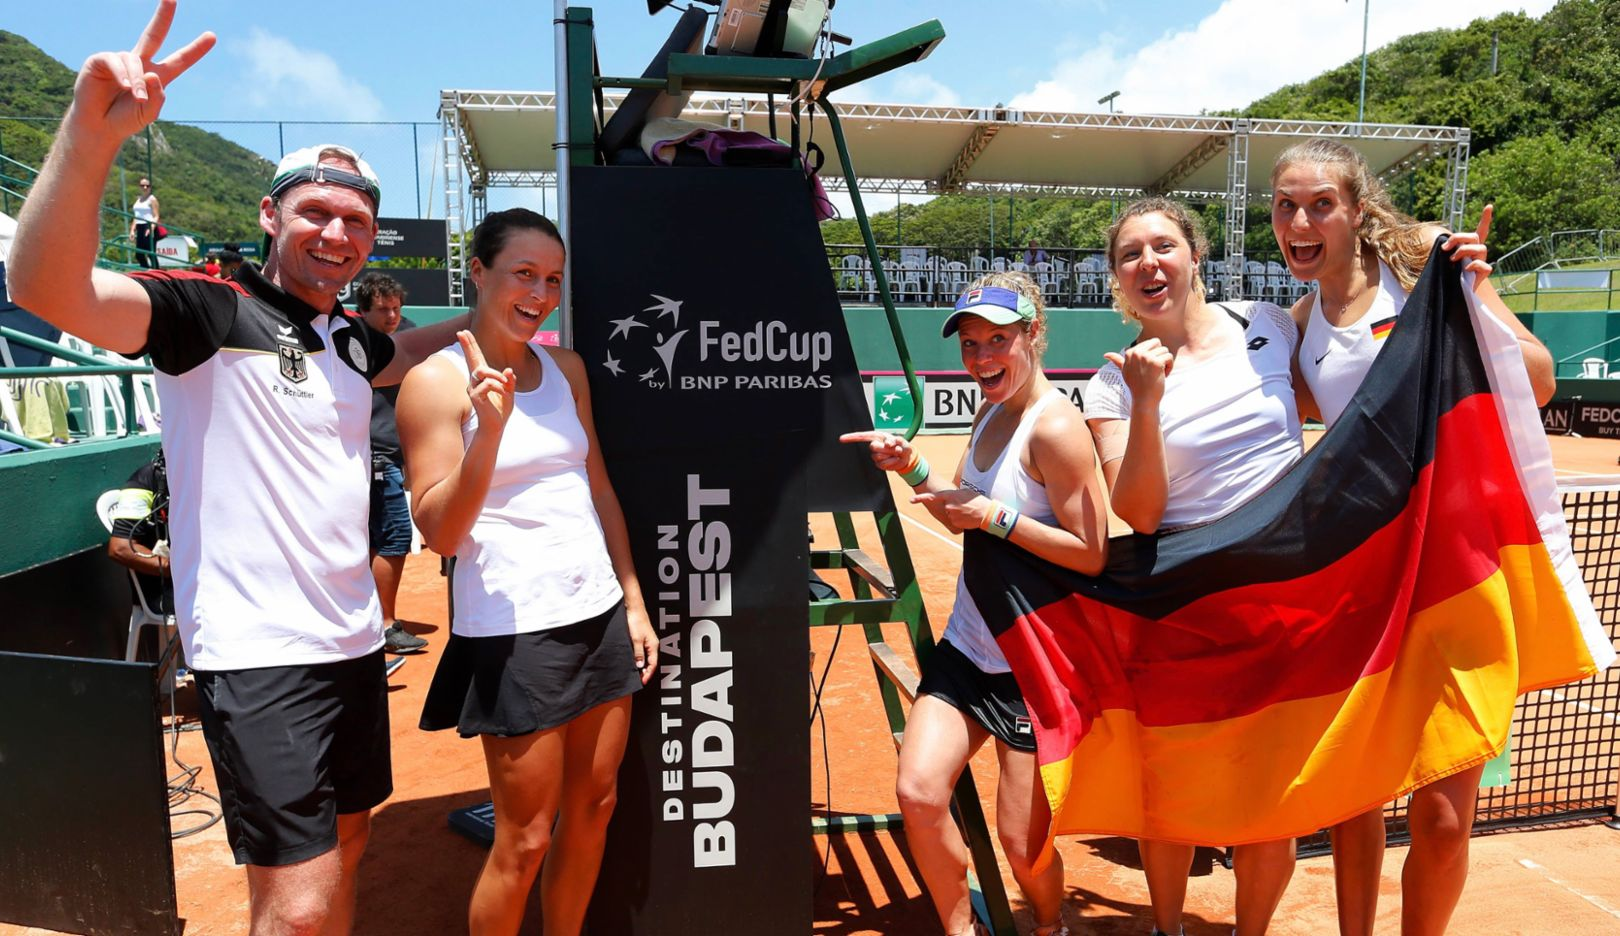 Porsche Team Germany qualifies for Fed Cup finals - Image 1